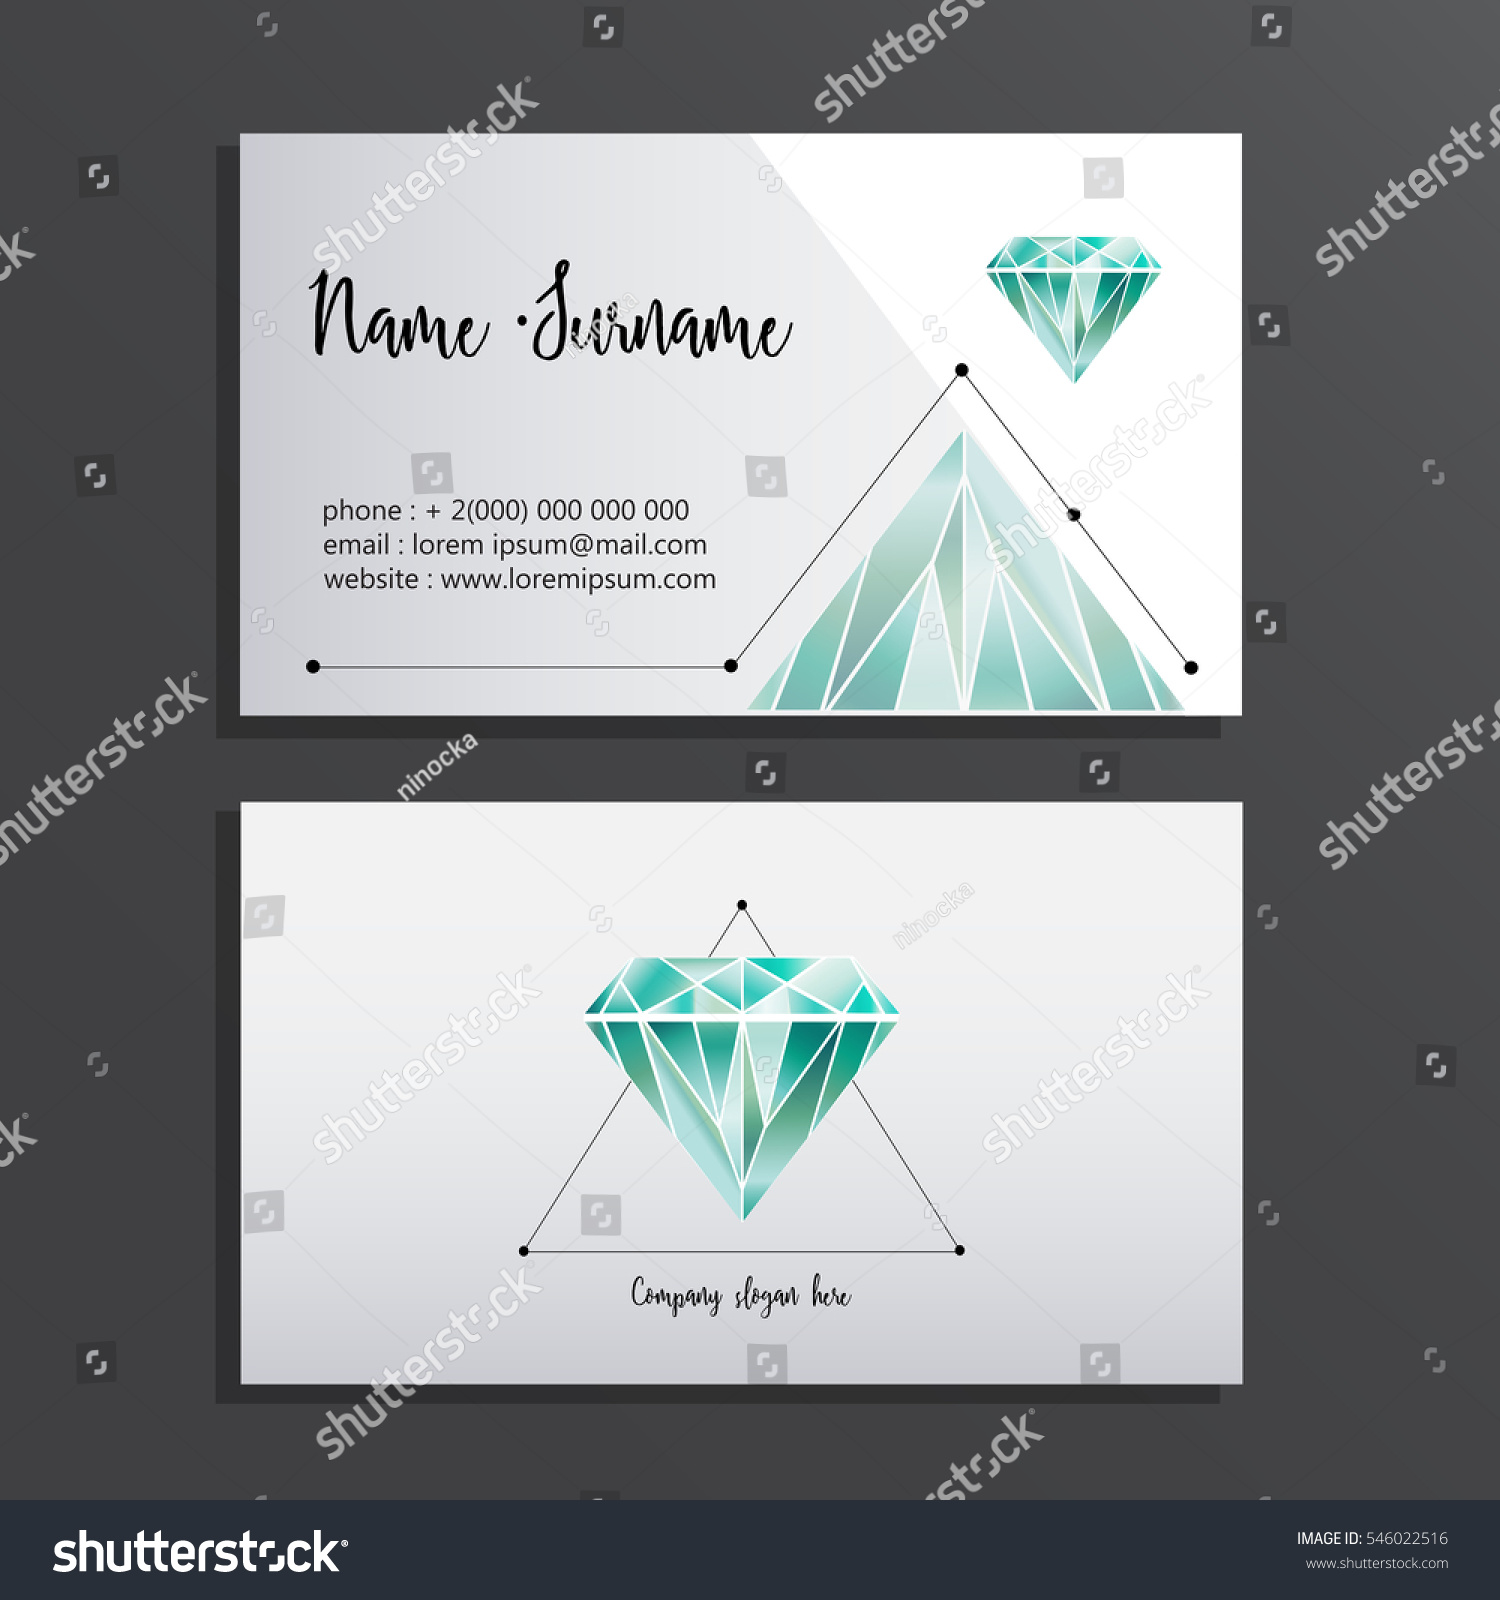 Elegant Business Card Abstract Business Card Stock Vector ...